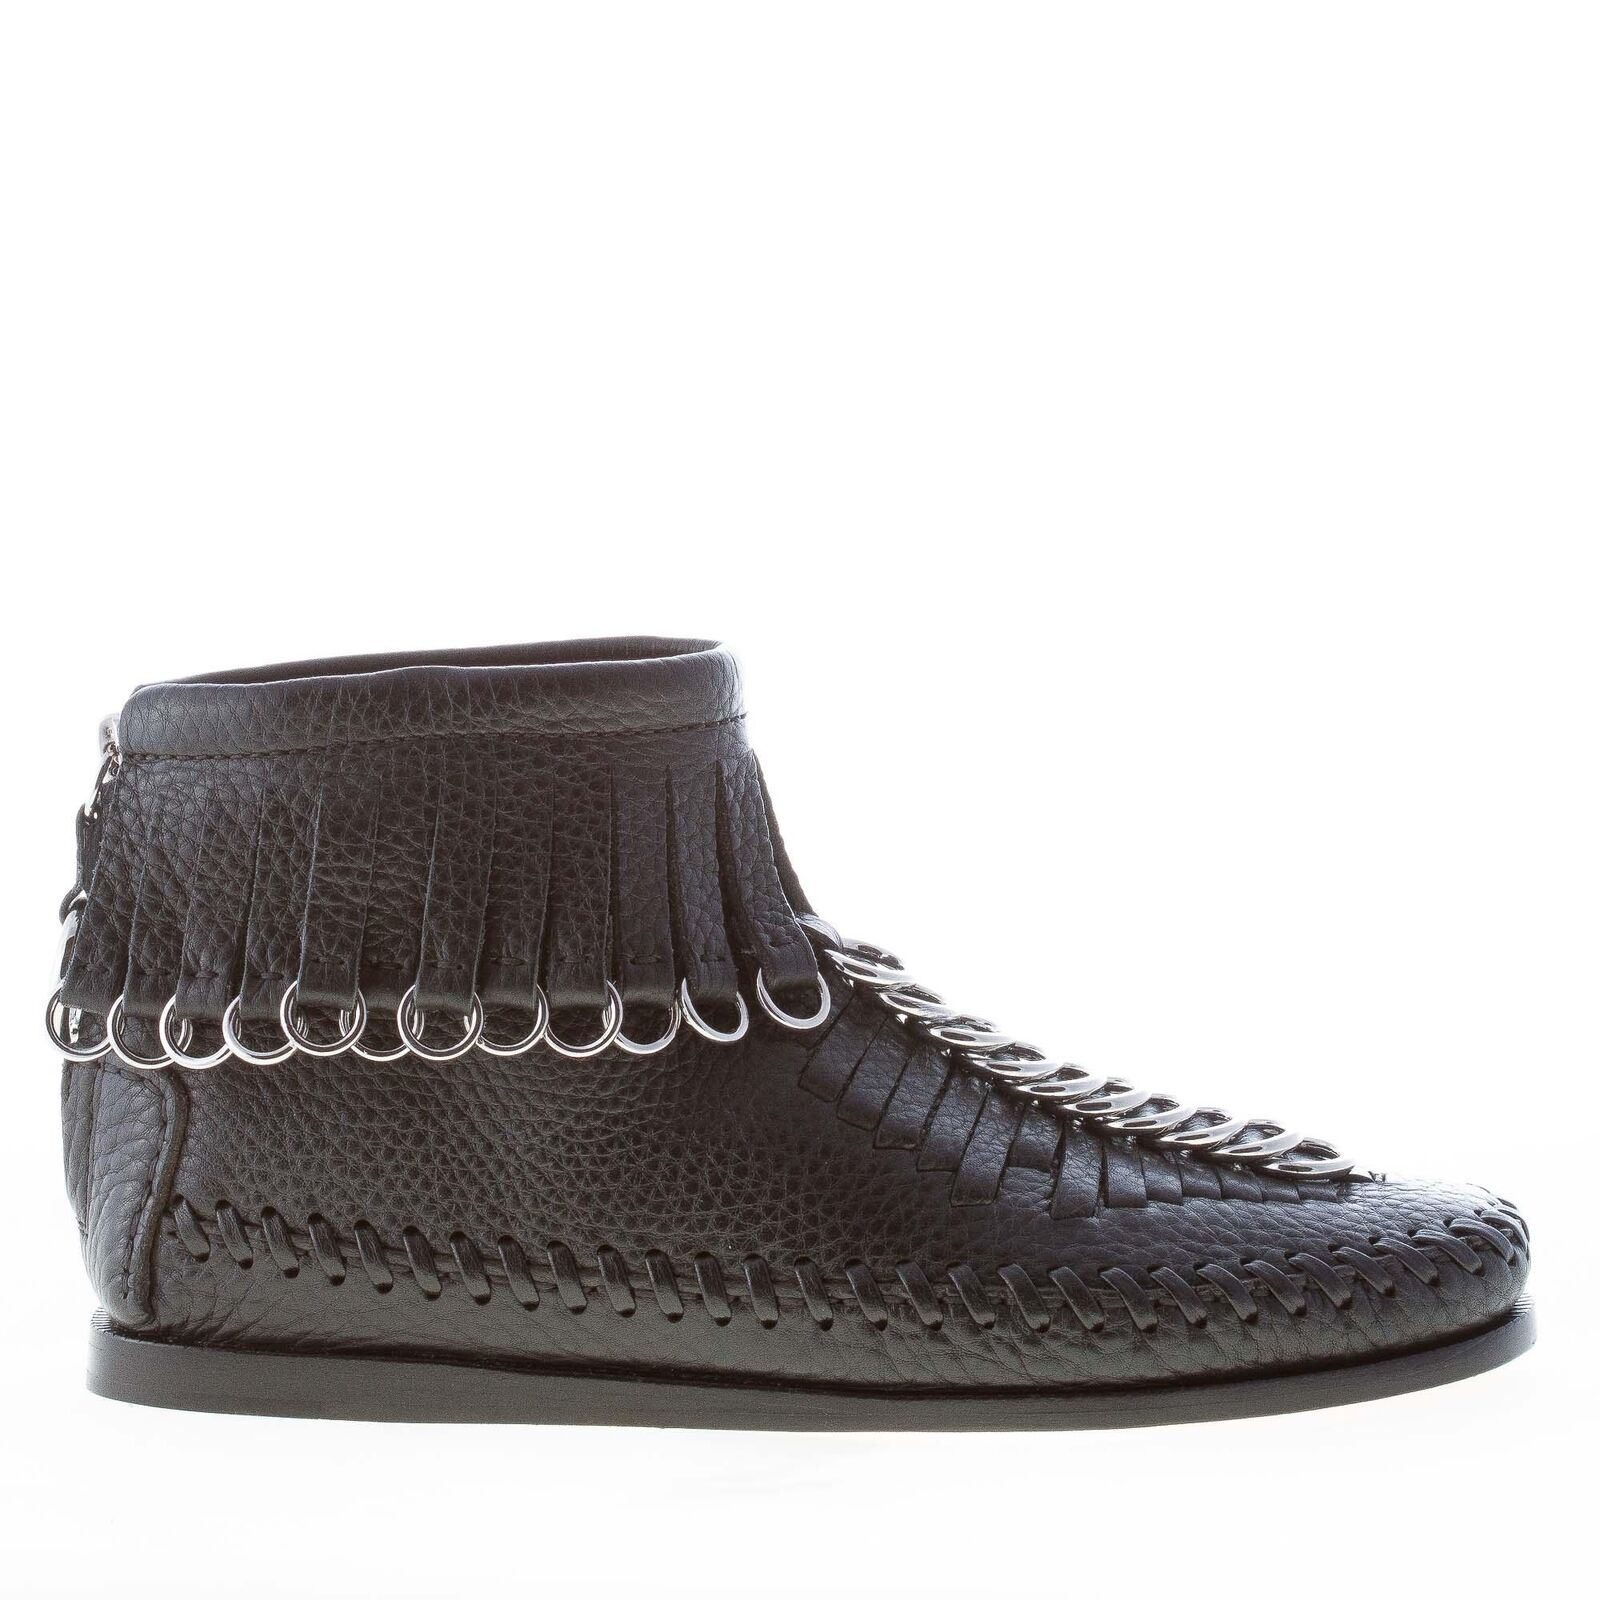 ALEXANDER WANG damen schuhe shoes Montana black leather ankle boot fringes rings